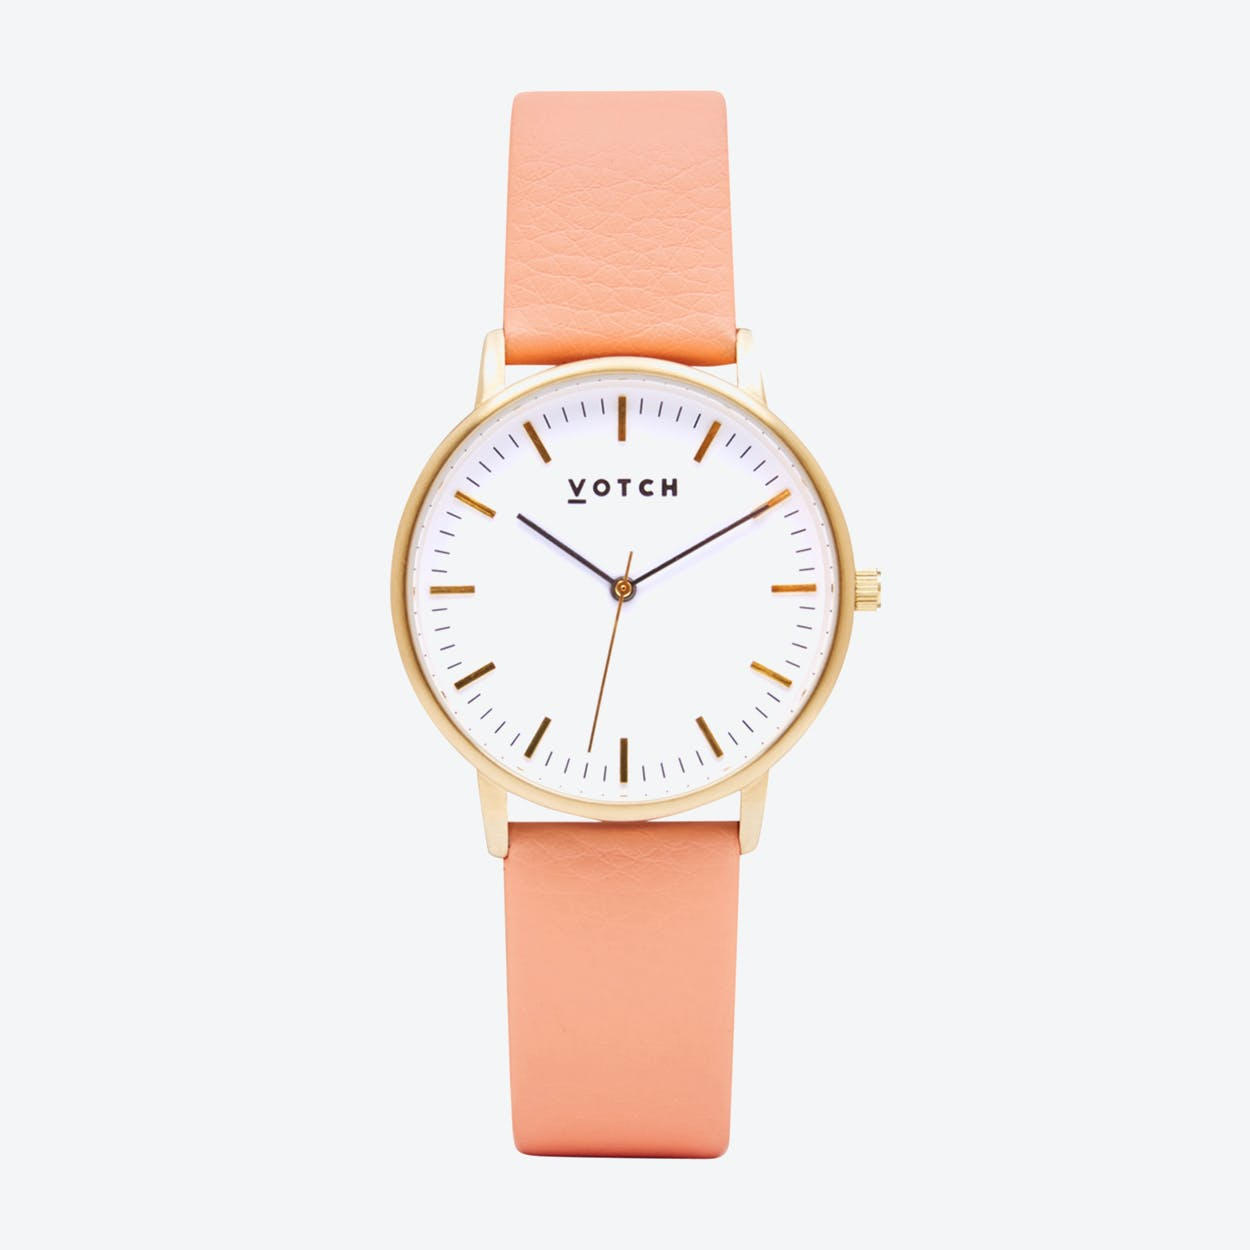 Intense Classic Watch in Gold with White Face and Coral Vegan Leather Strap, 36mm